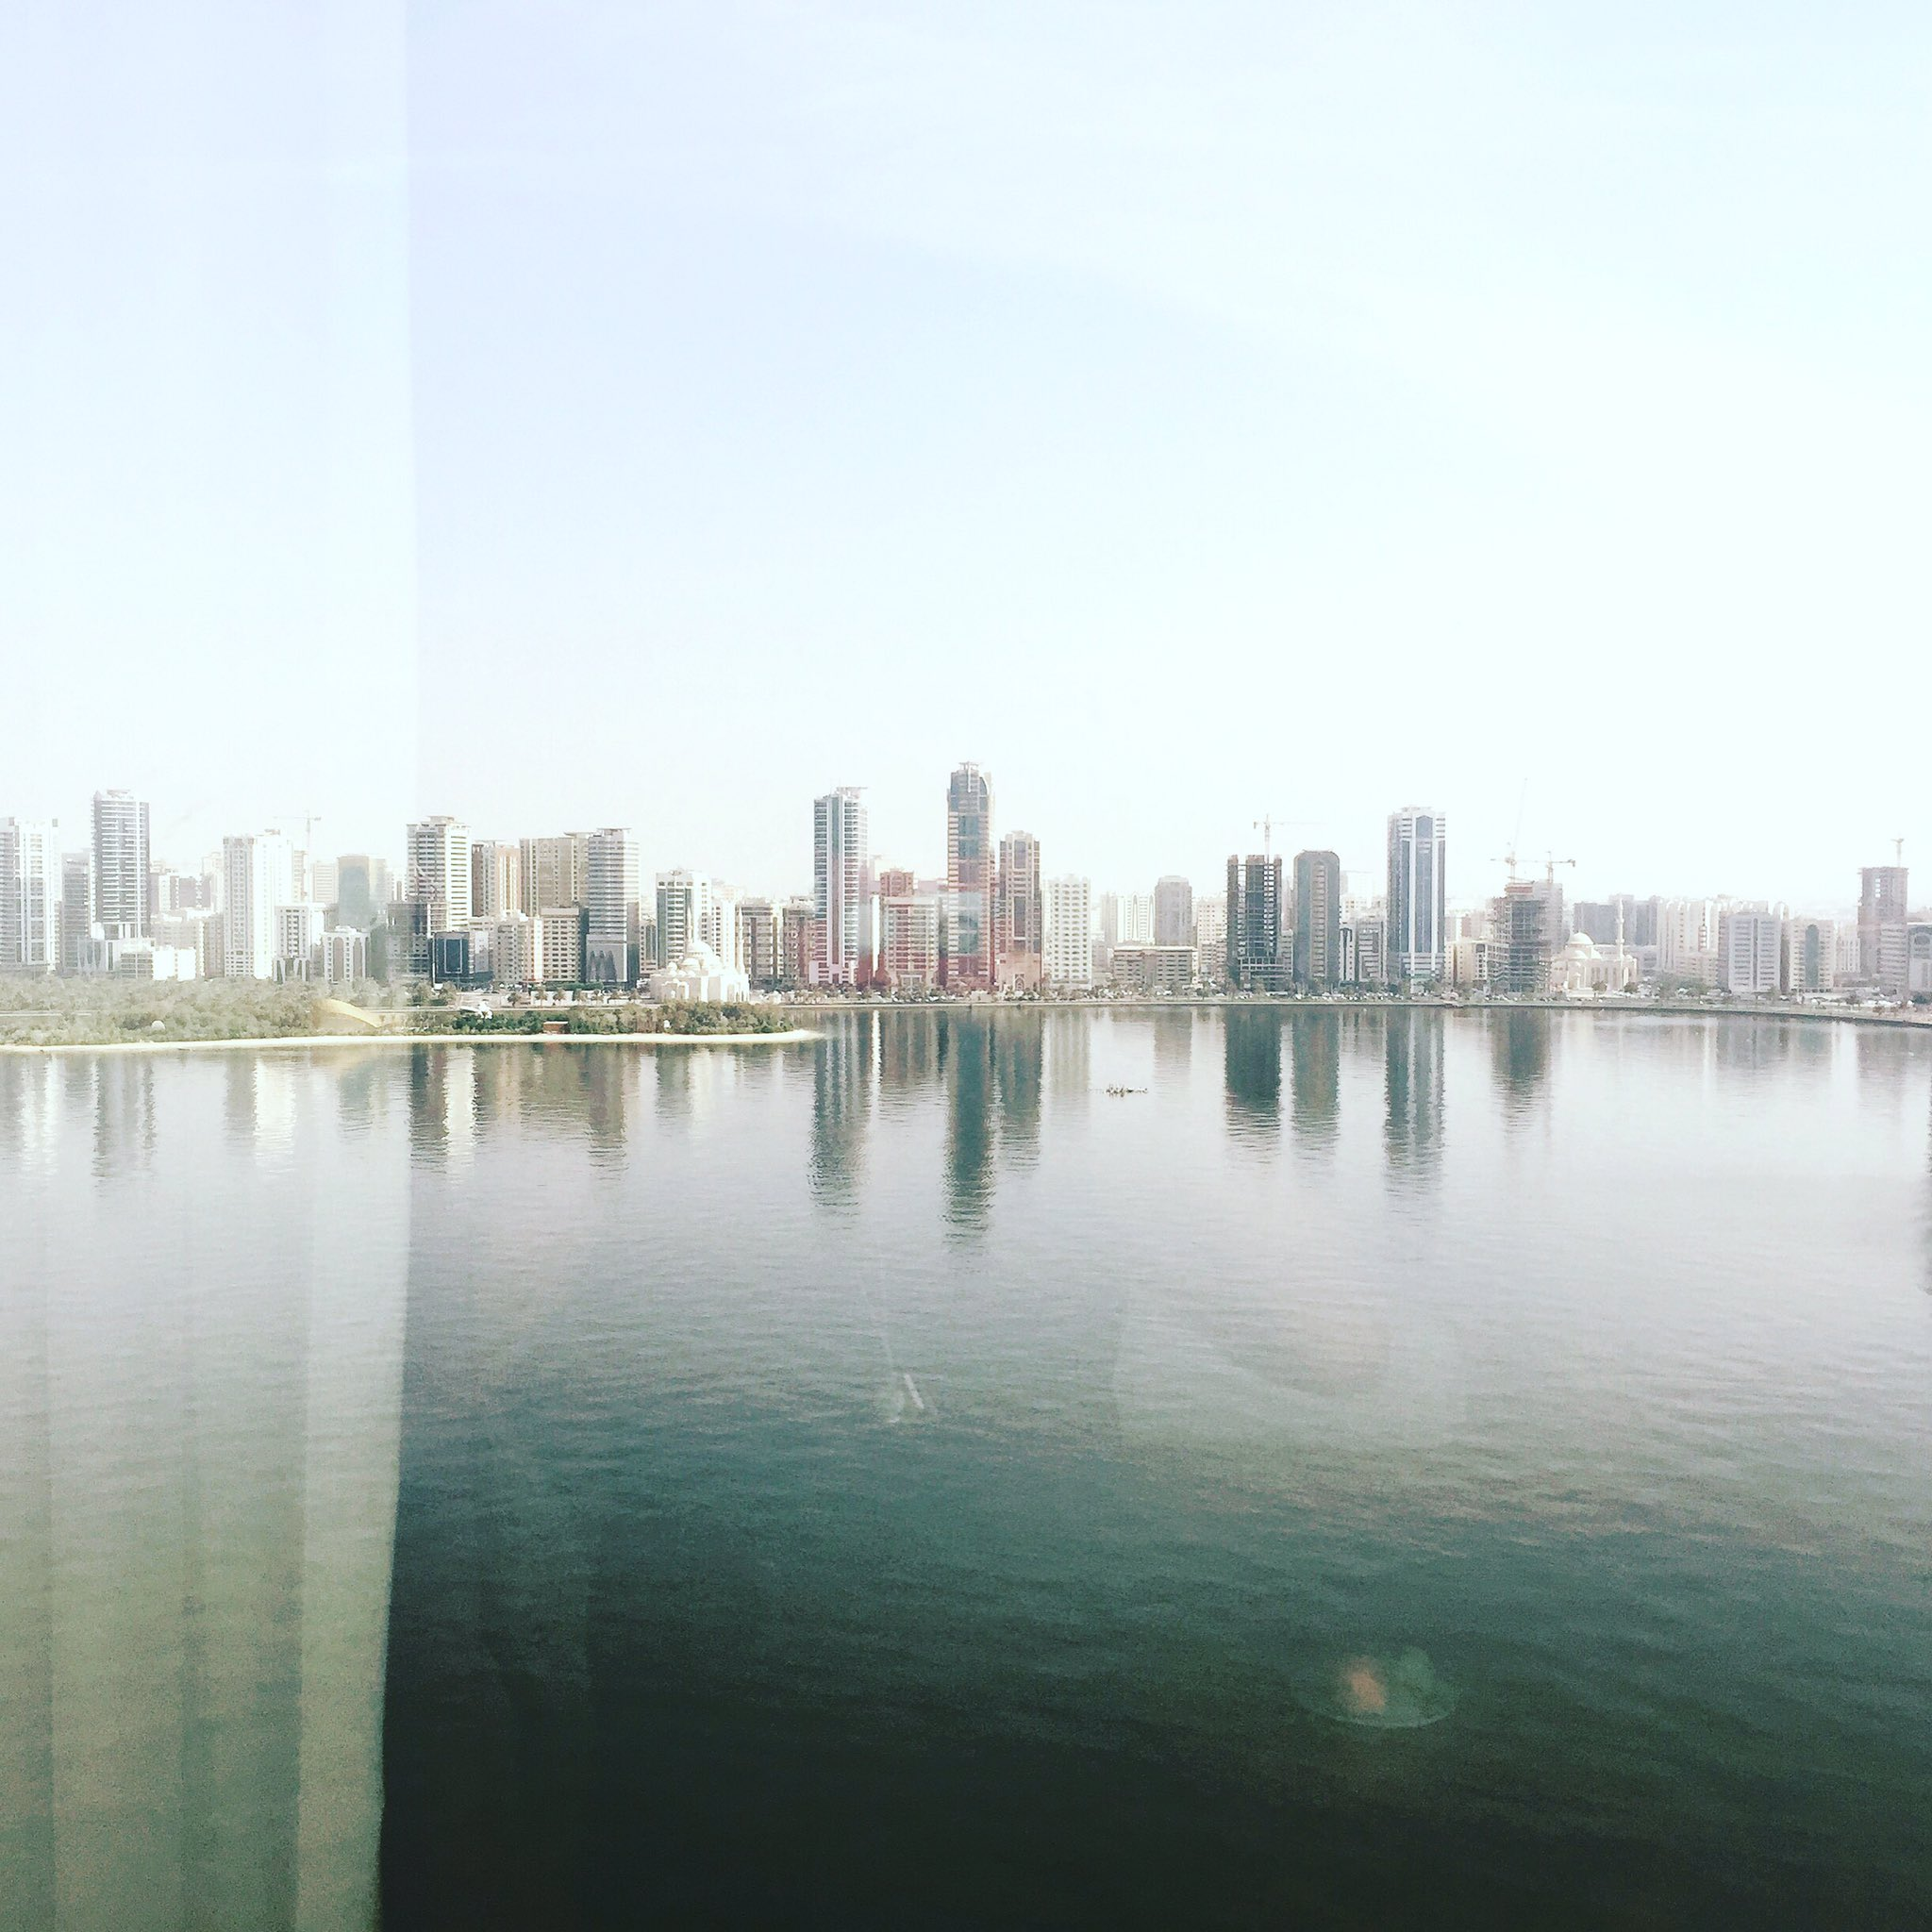 What I see #ASKinUAE https://t.co/0fEmGIX2EU